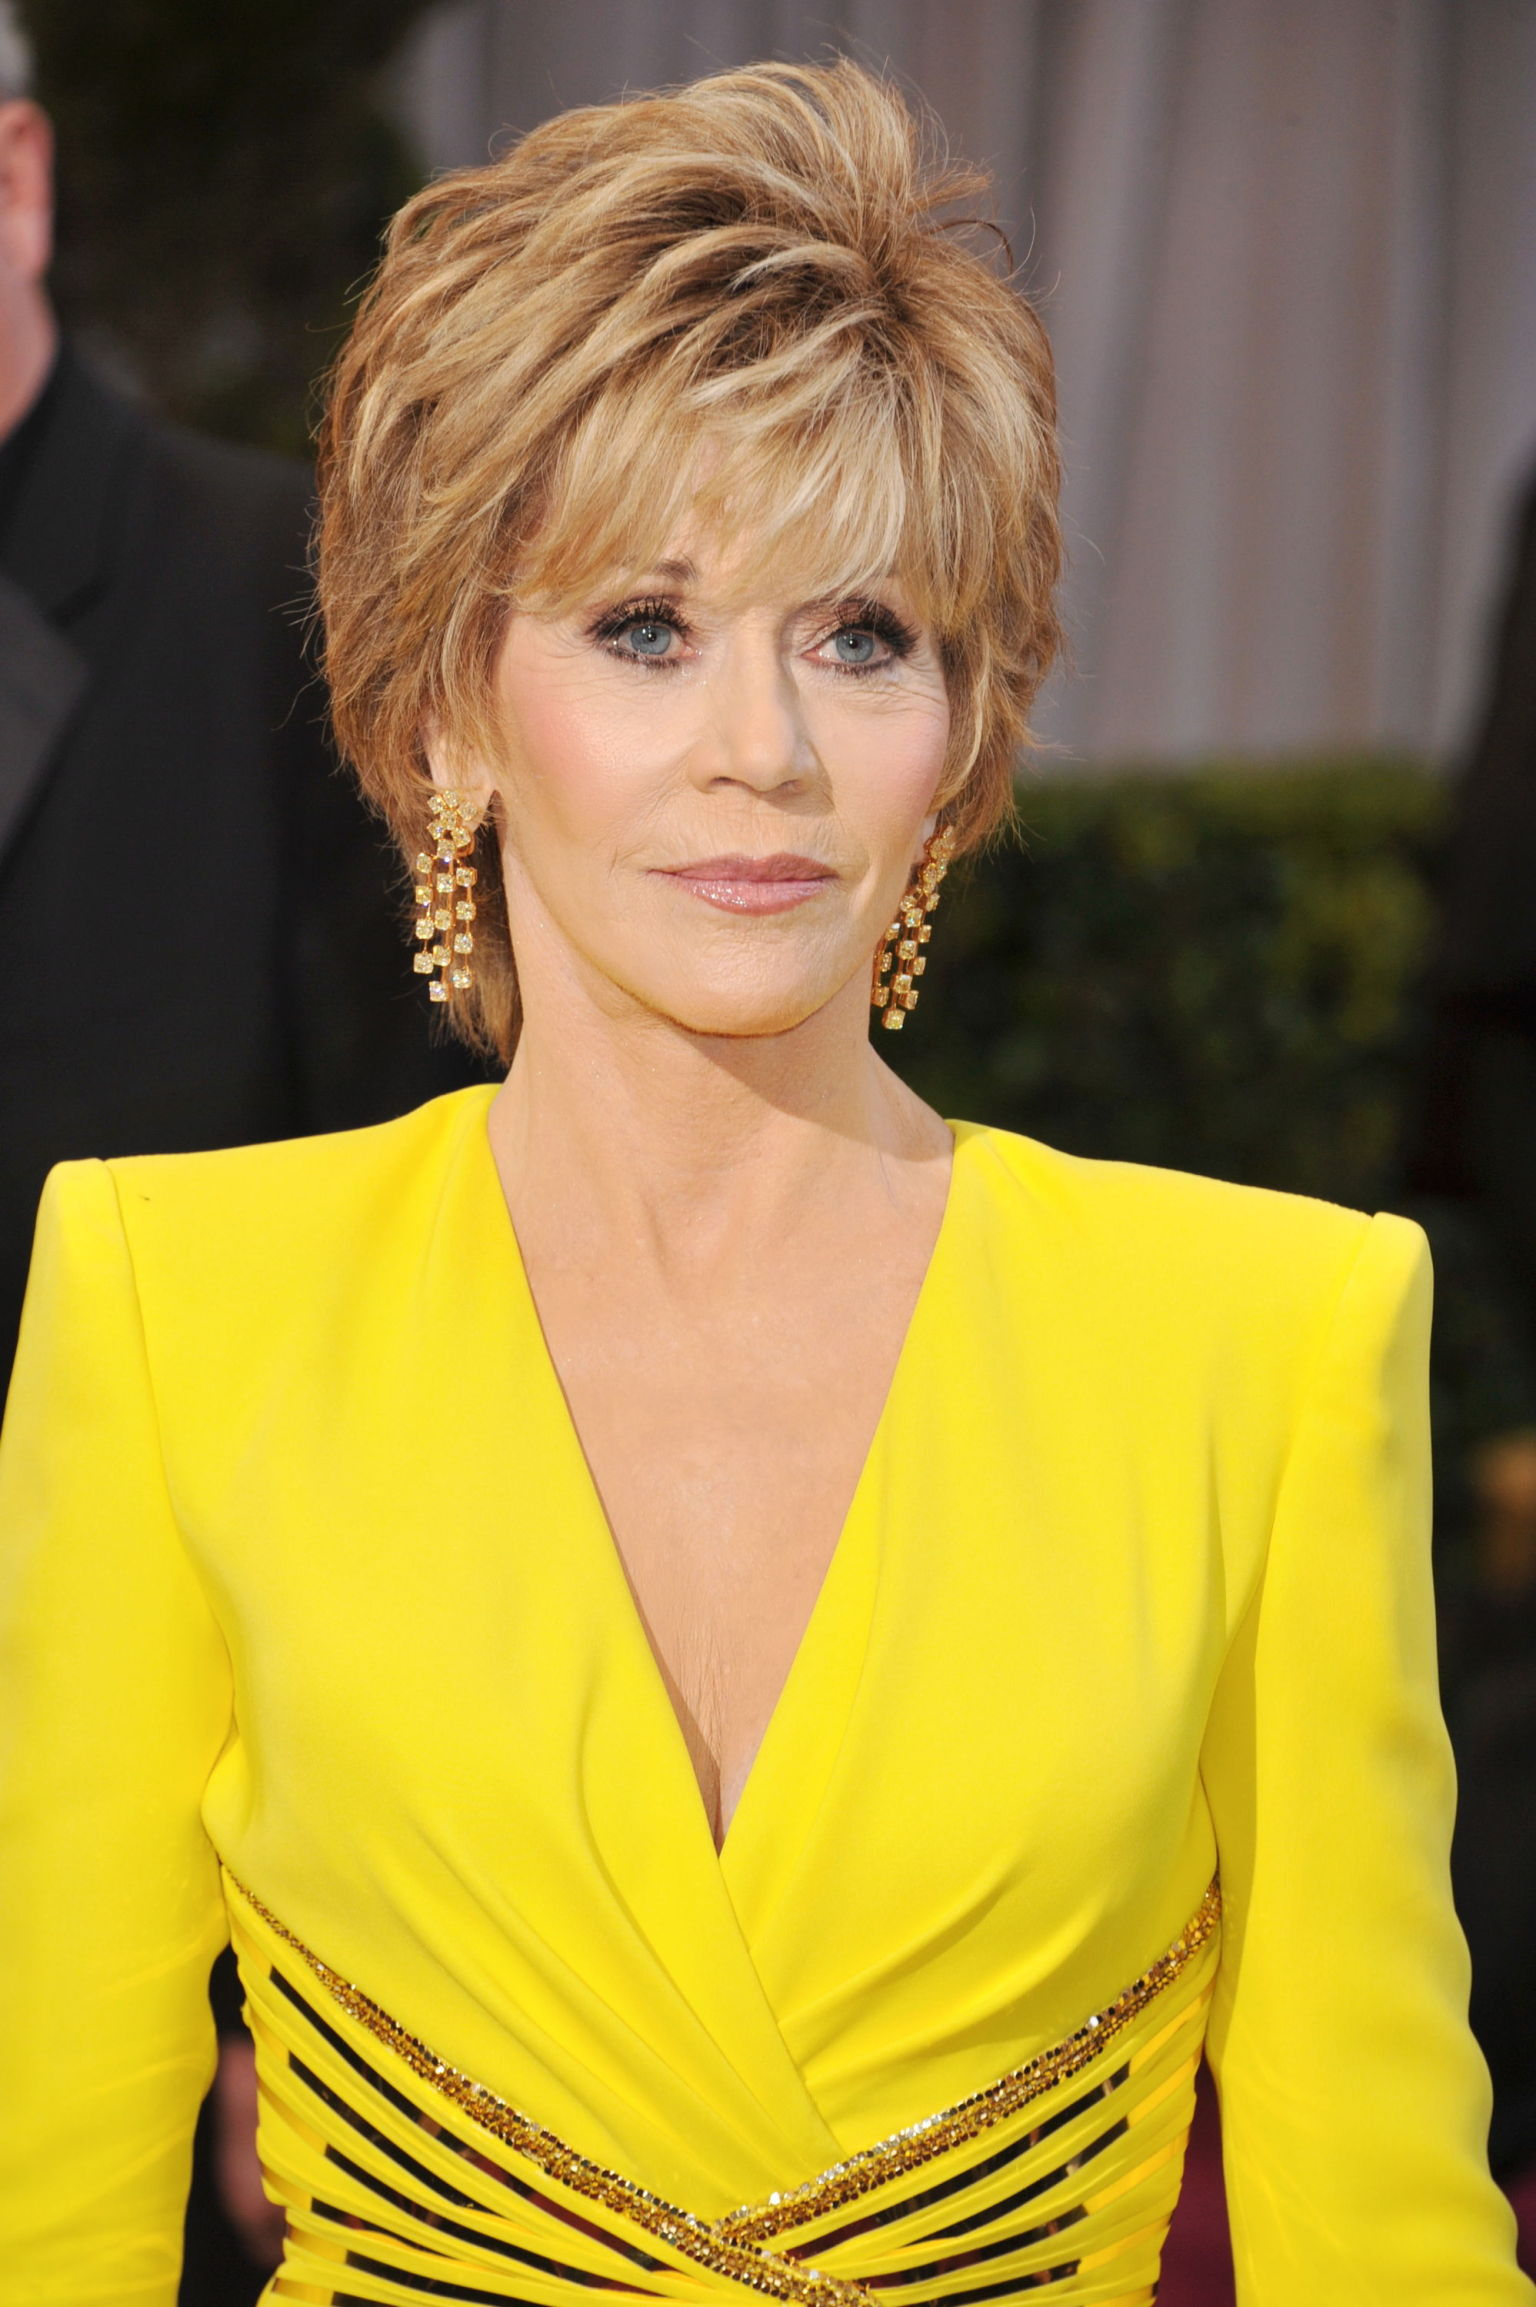 fonda haircut 2013 the 11 greatest ted talks for anyone 50 huffpost 5543